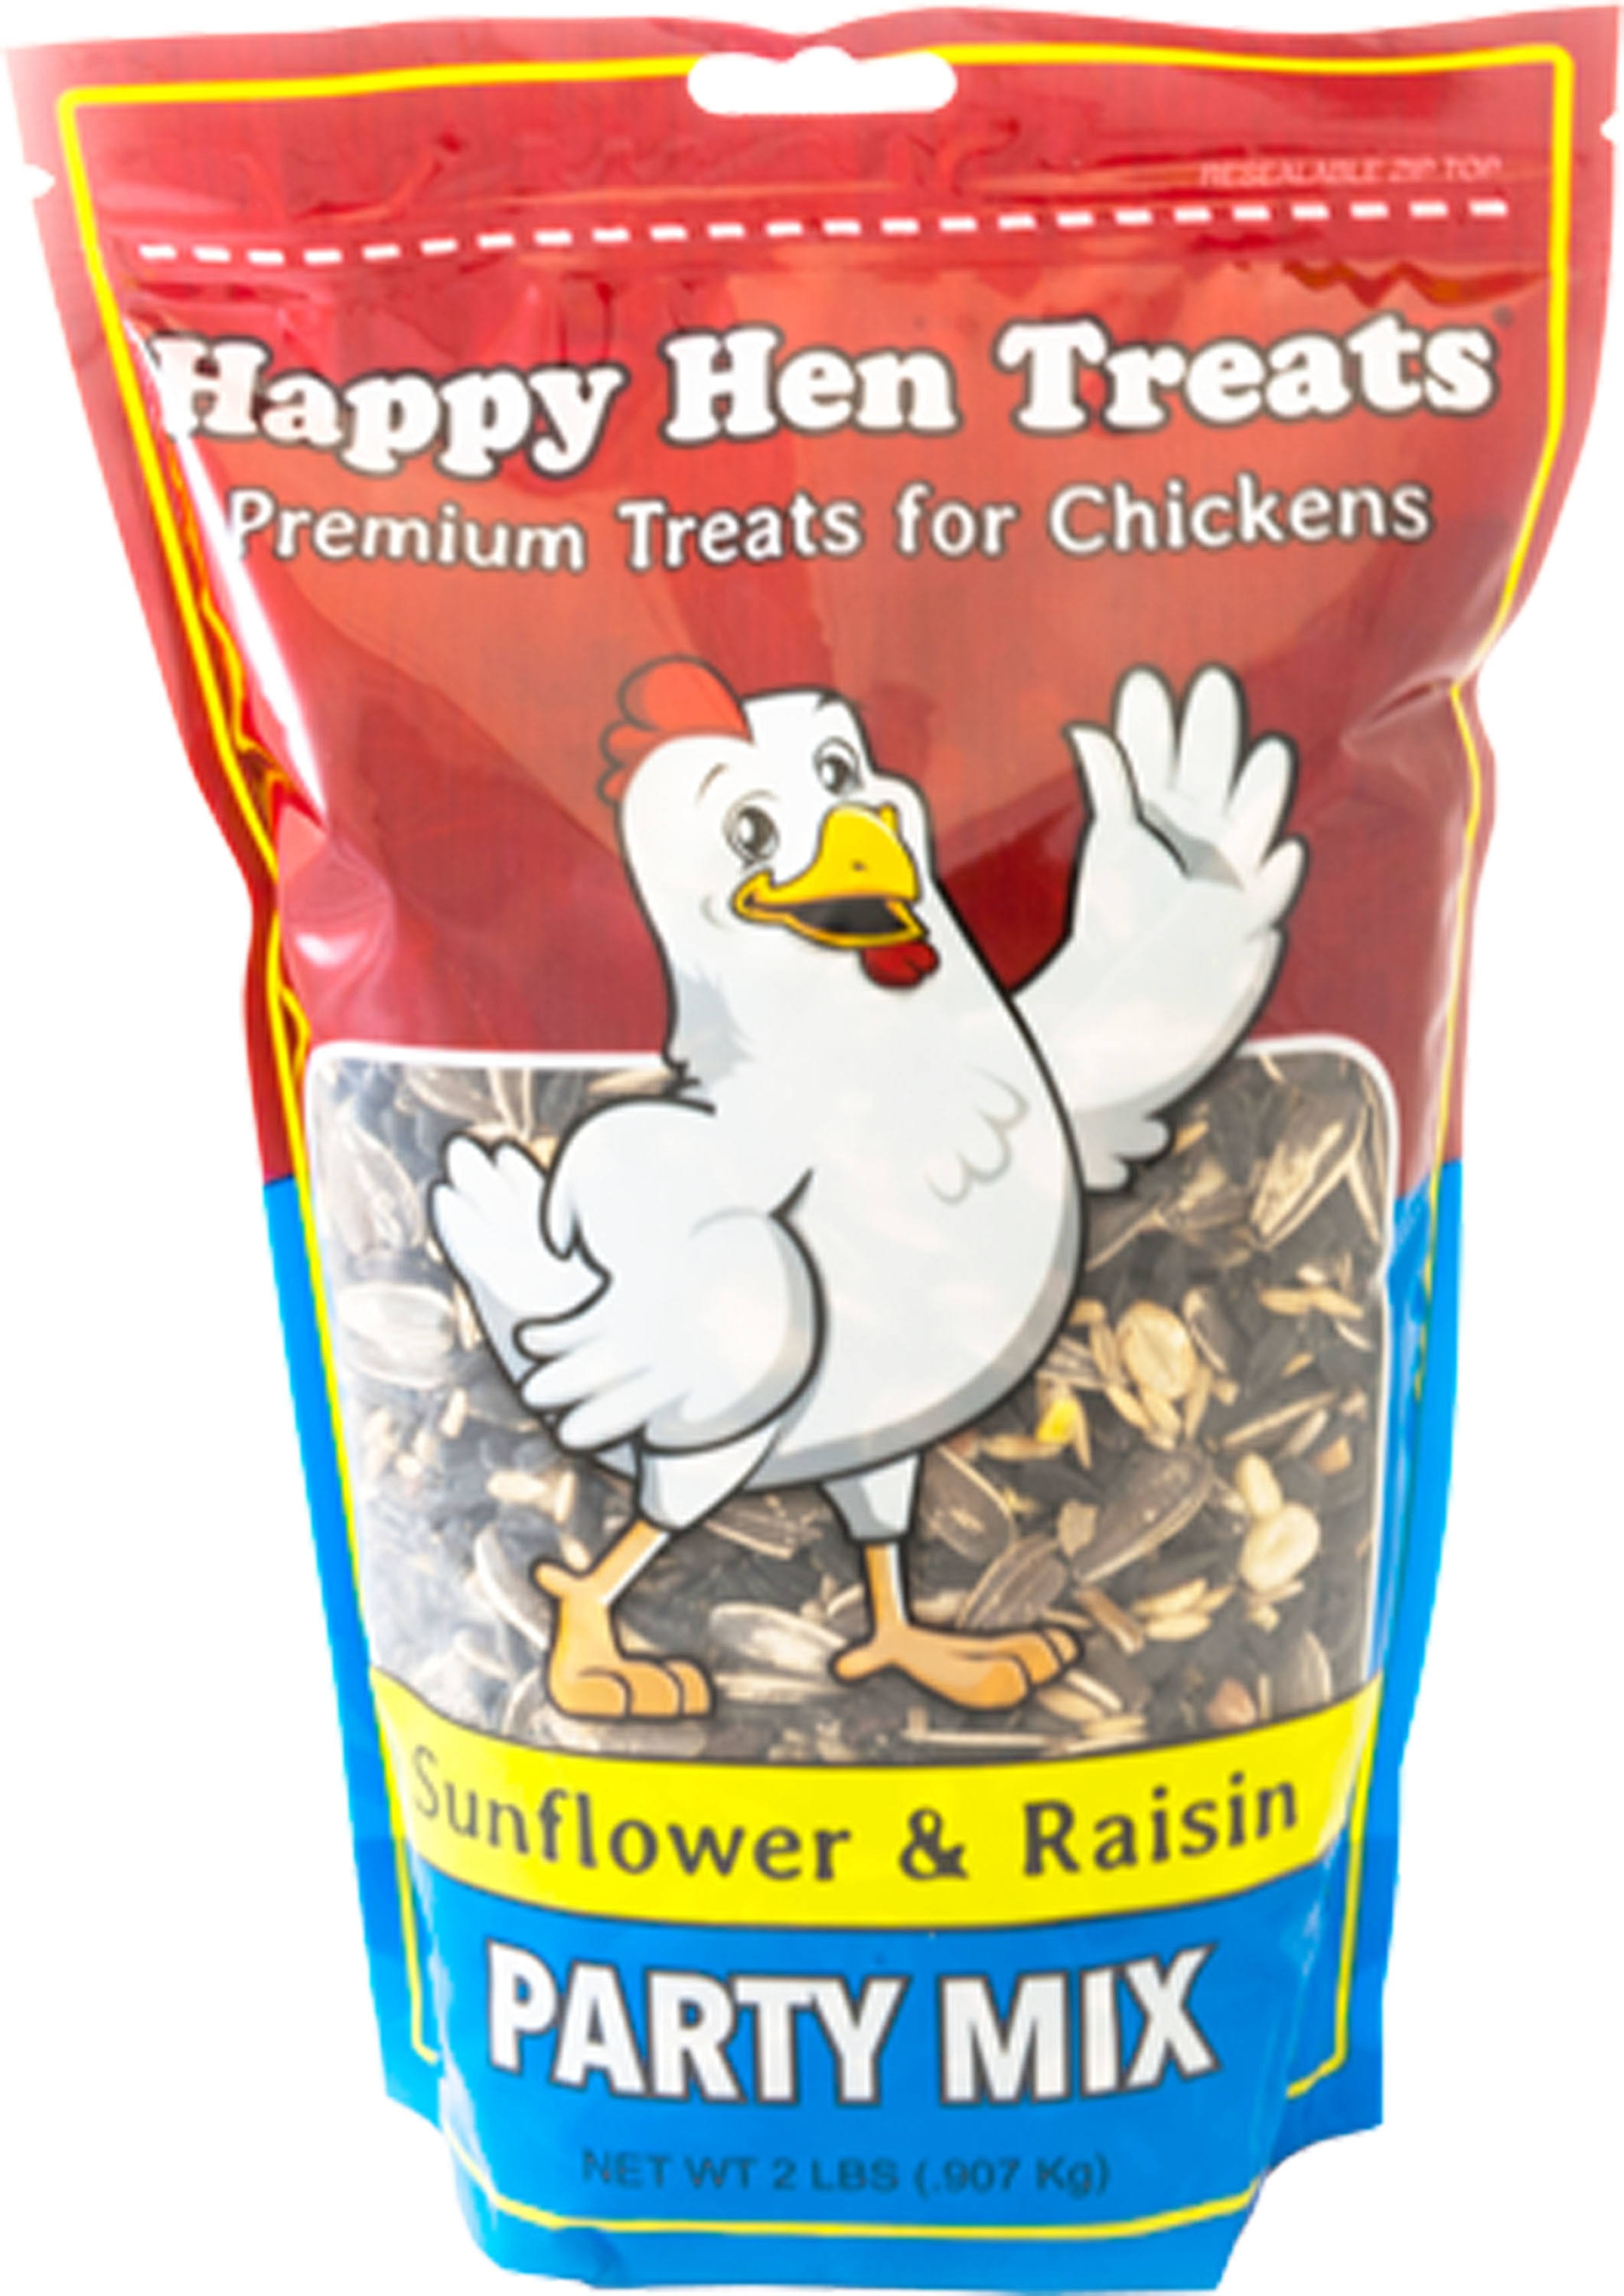 Happy Hen Treats Party Mix Sunflower & Raisin - 2lb